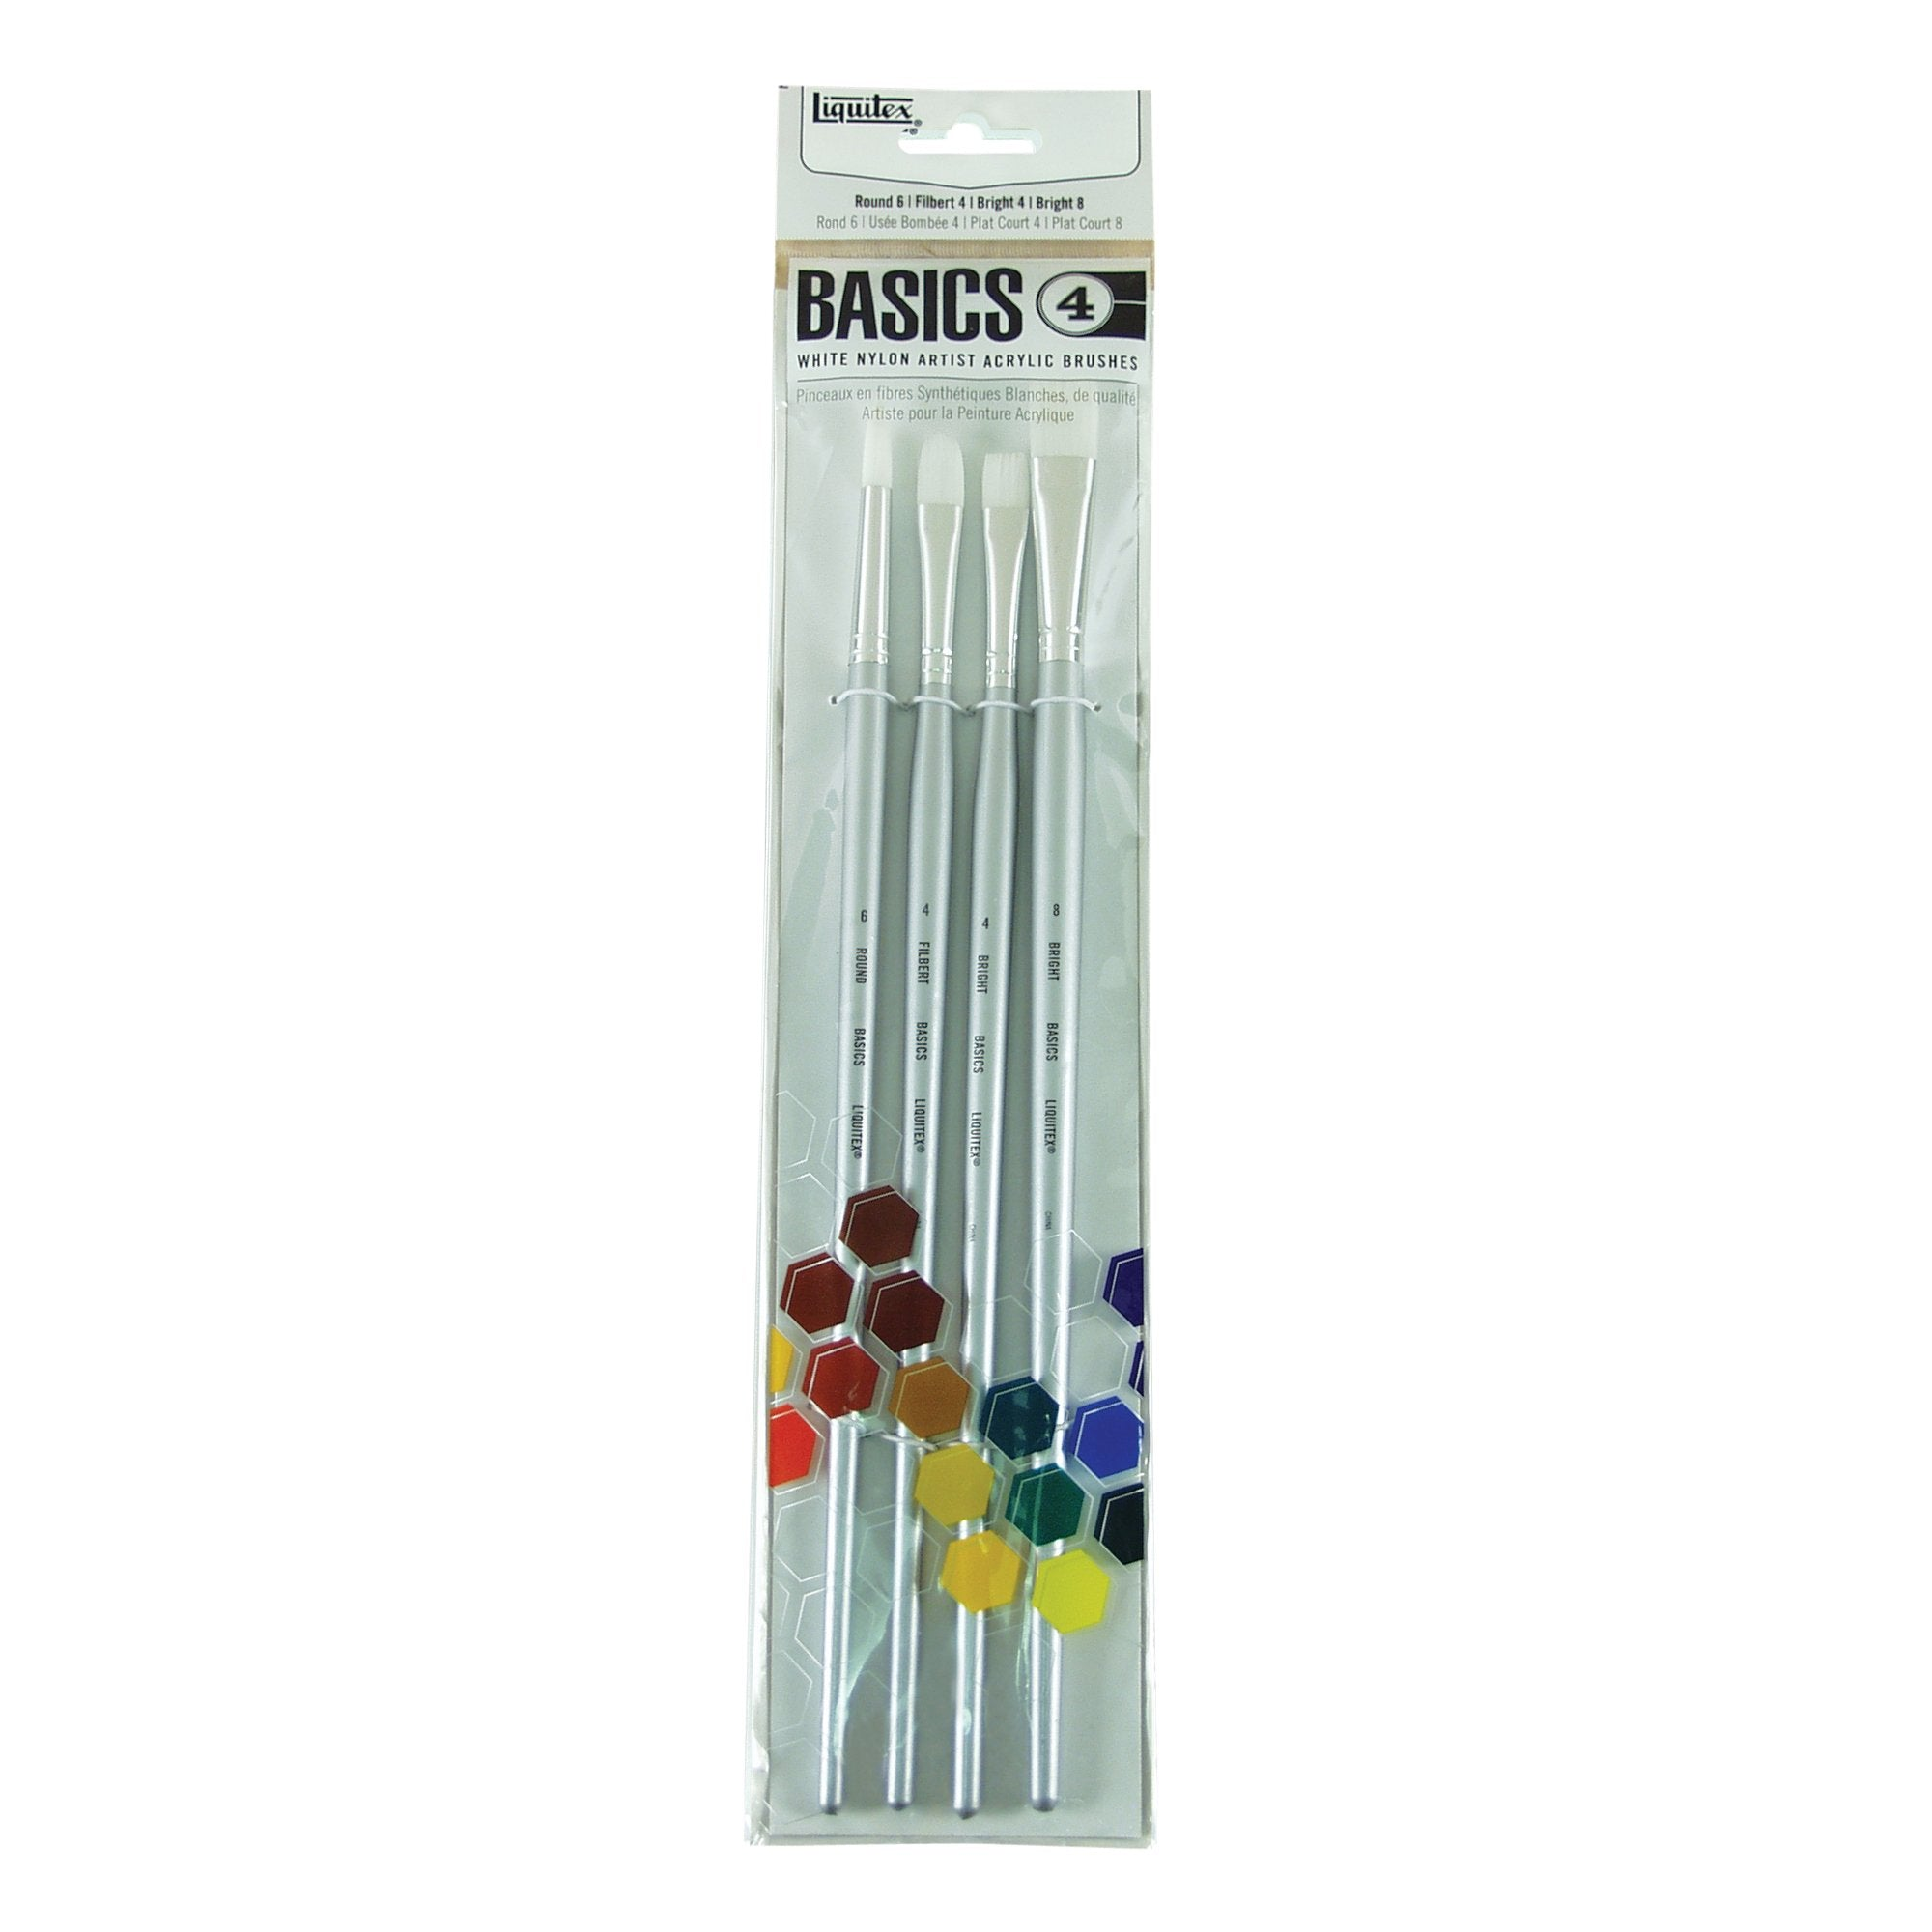 Liquitex BASICS Brush Set 4, Large Brush